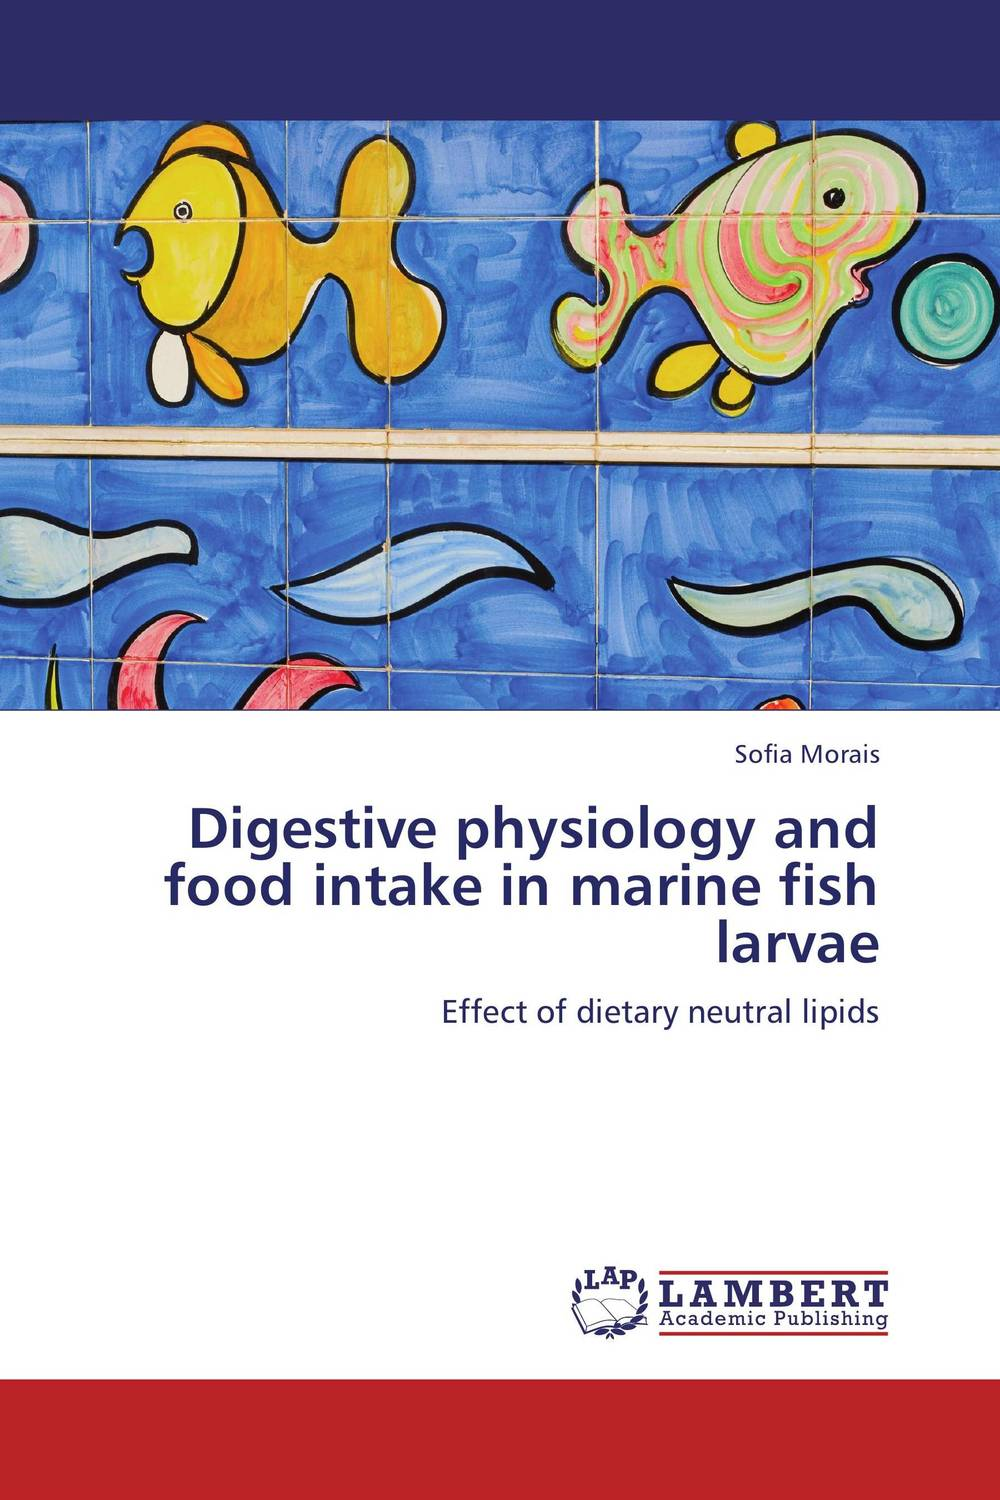 Digestive physiology and food intake in marine fish larvae 1000g 98% fish collagen powder high purity for functional food